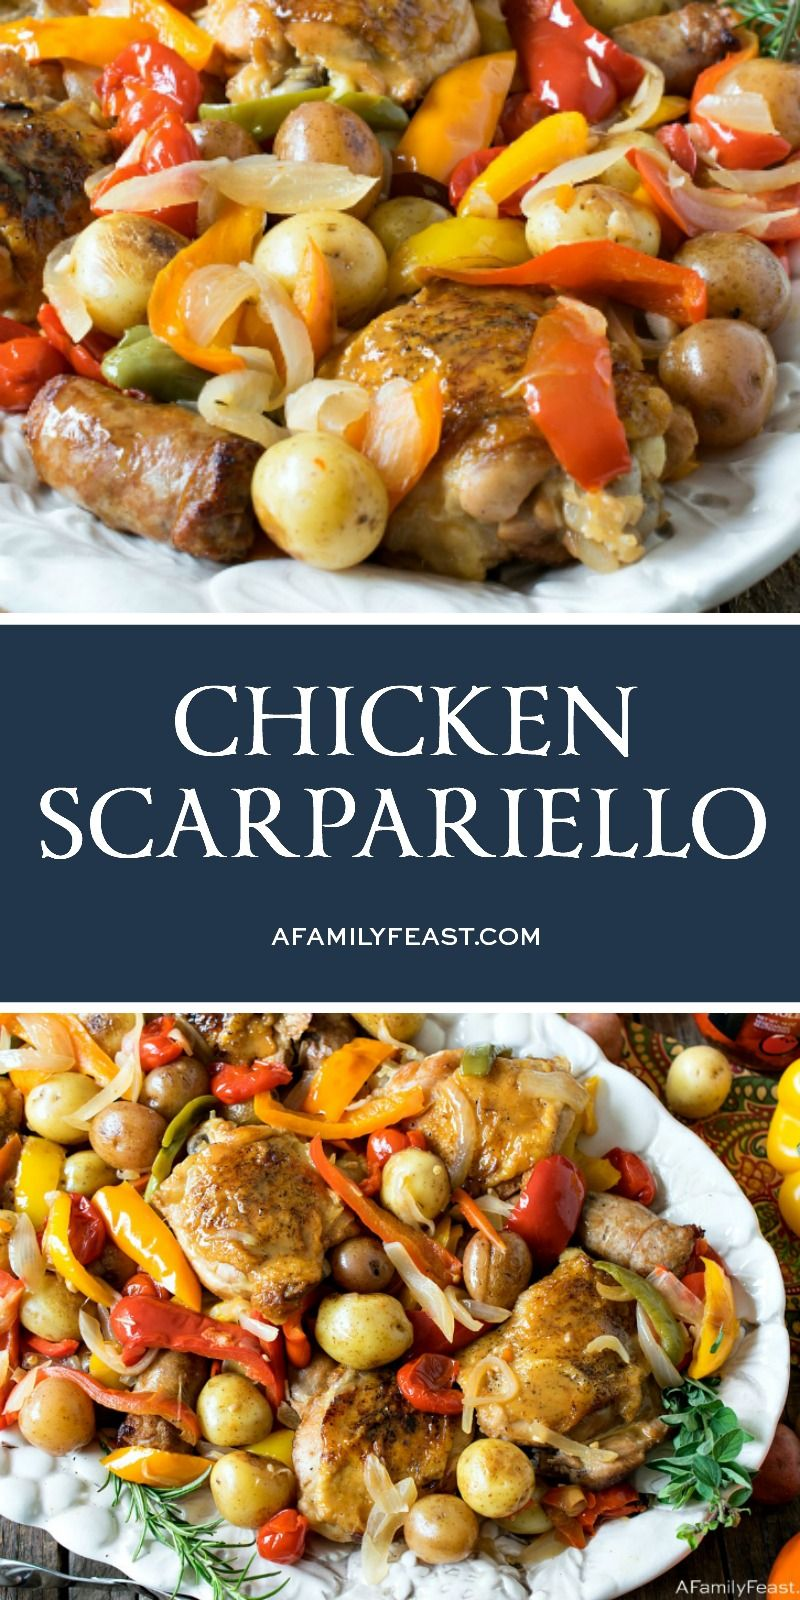 Chicken Scarpariello - A Family Feast